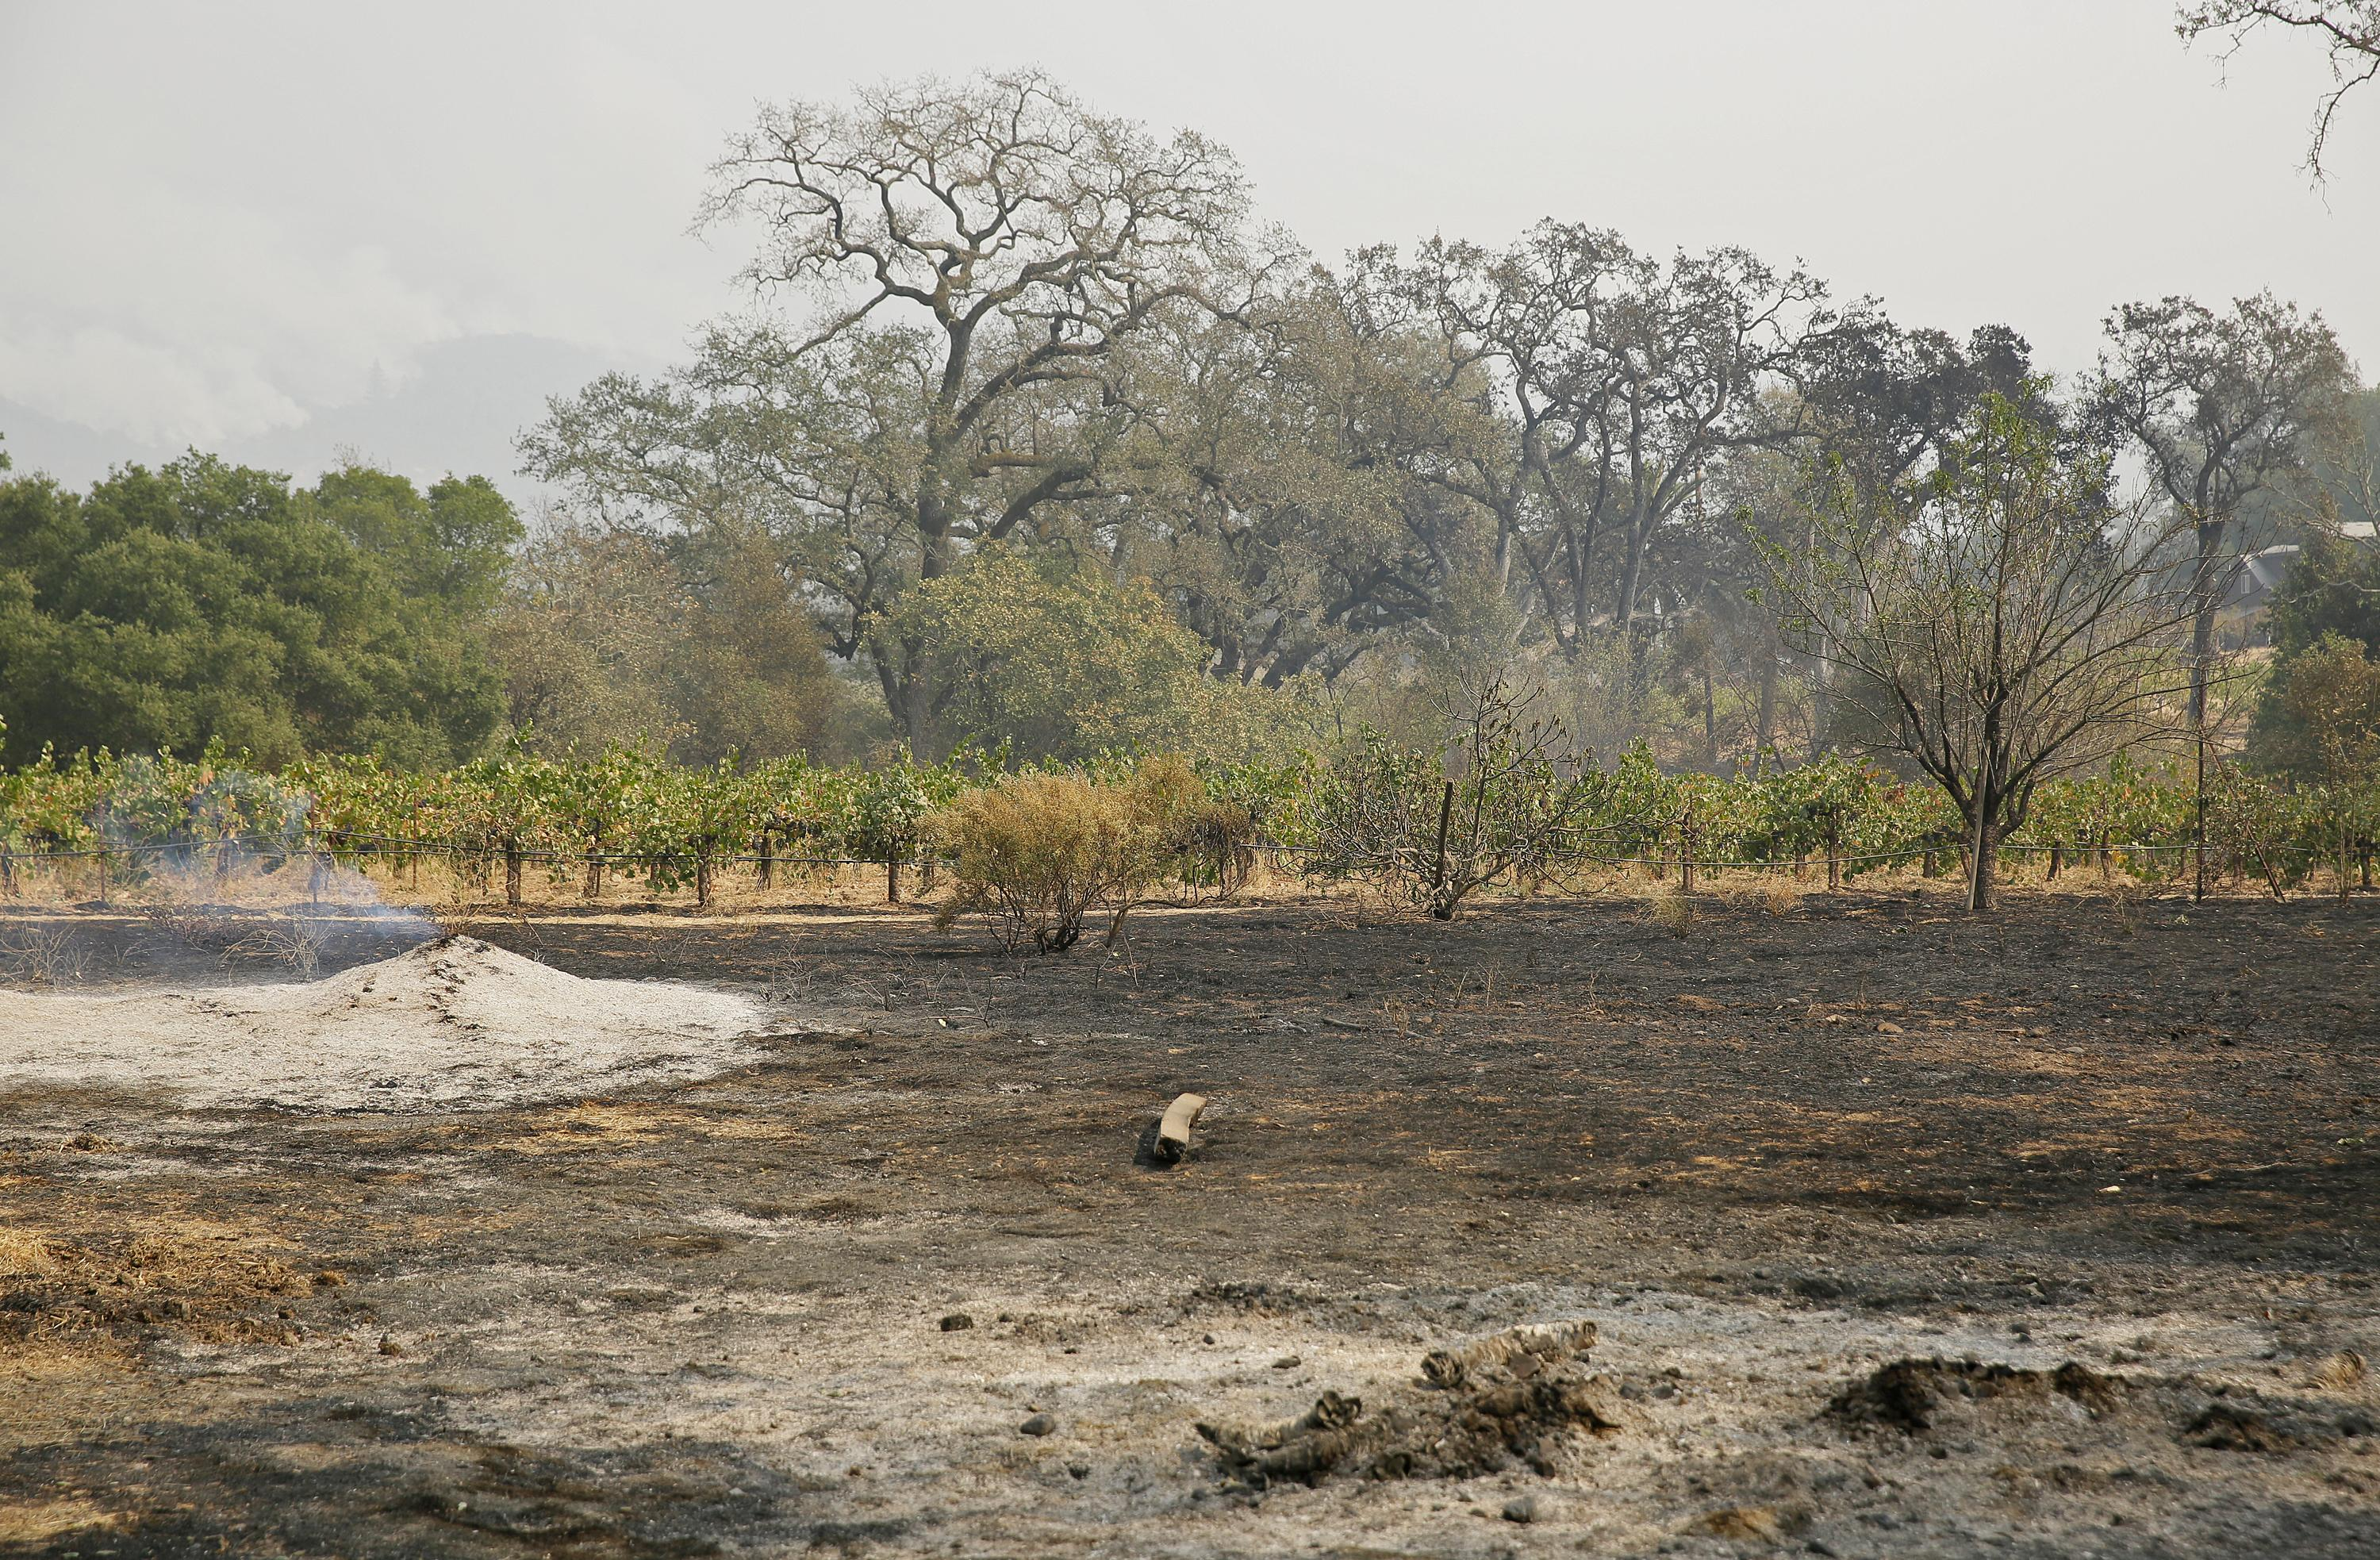 The ground smolders along the vineyard at Old Hill Ranch Tuesday, Oct. 10, 2017, near Glen Ellen, Calif. Workers in Northern California's renowned wine country picked through charred debris and weighed what to do with pricey grapes after wildfires swept through lush vineyards and destroyed at least two wineries and damaged many others. (AP Photo/Eric Risberg)